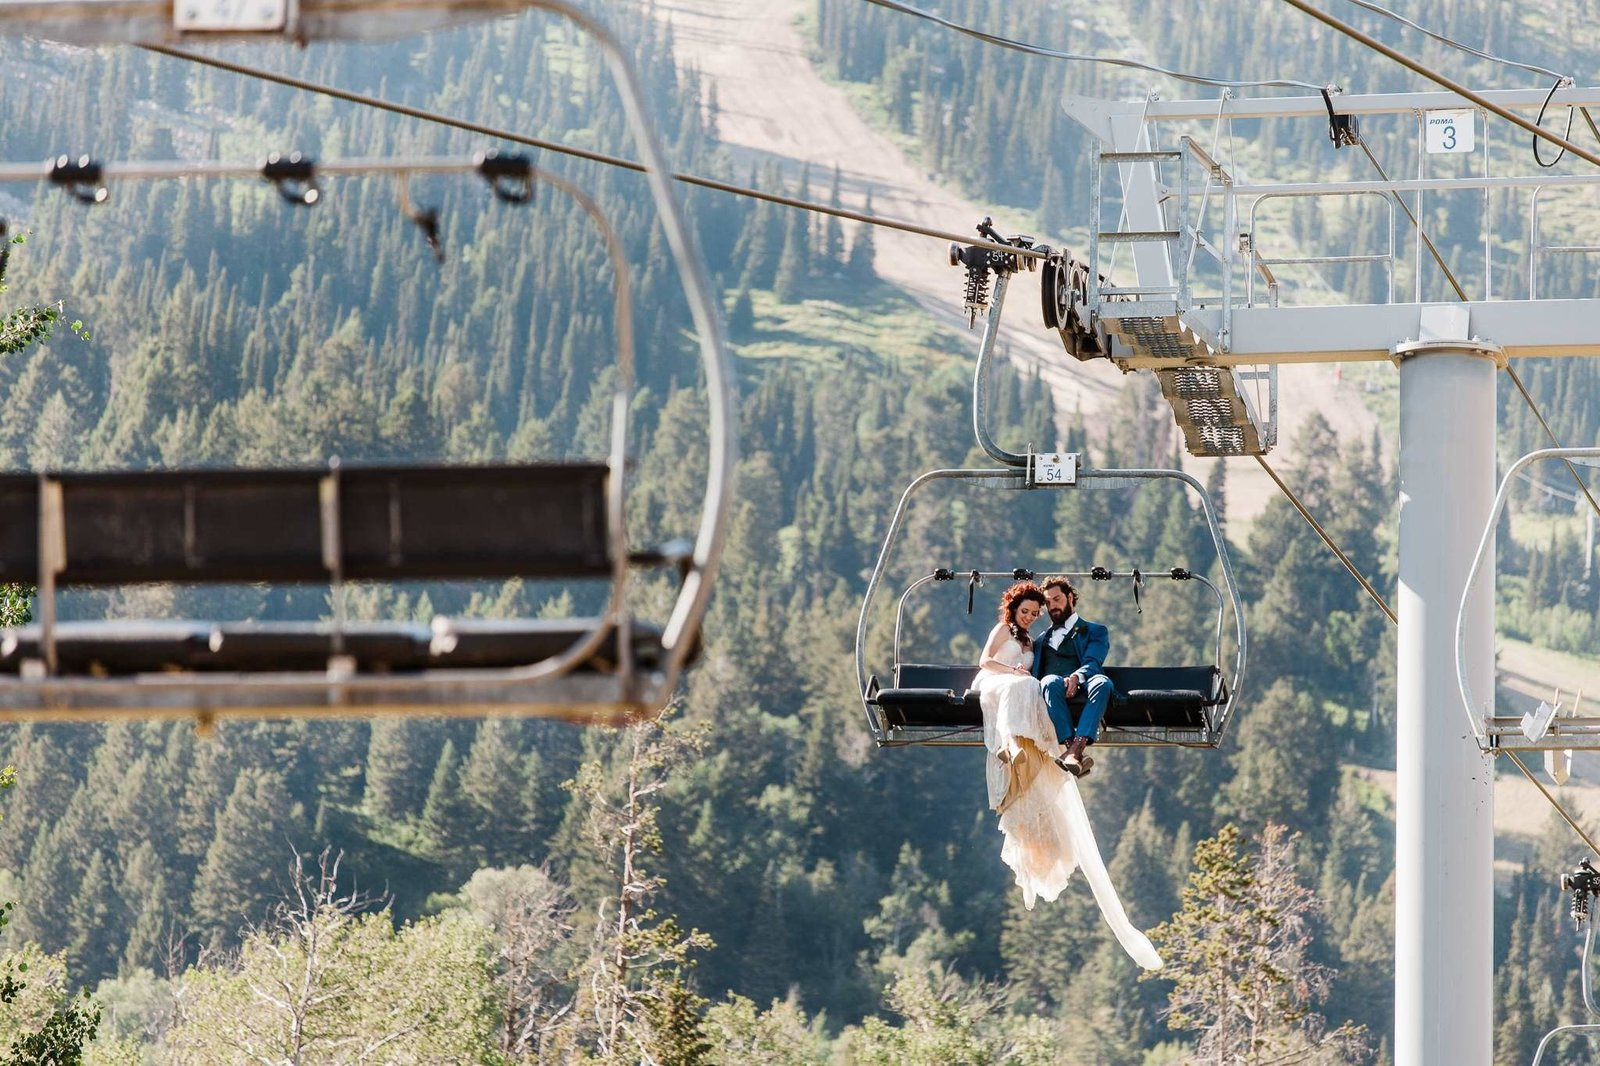 Jackson Hole adventure elopement photographer Amy Galbraith's image of a bride and groom on a chairlift at Jackson Hole Mountain Resort